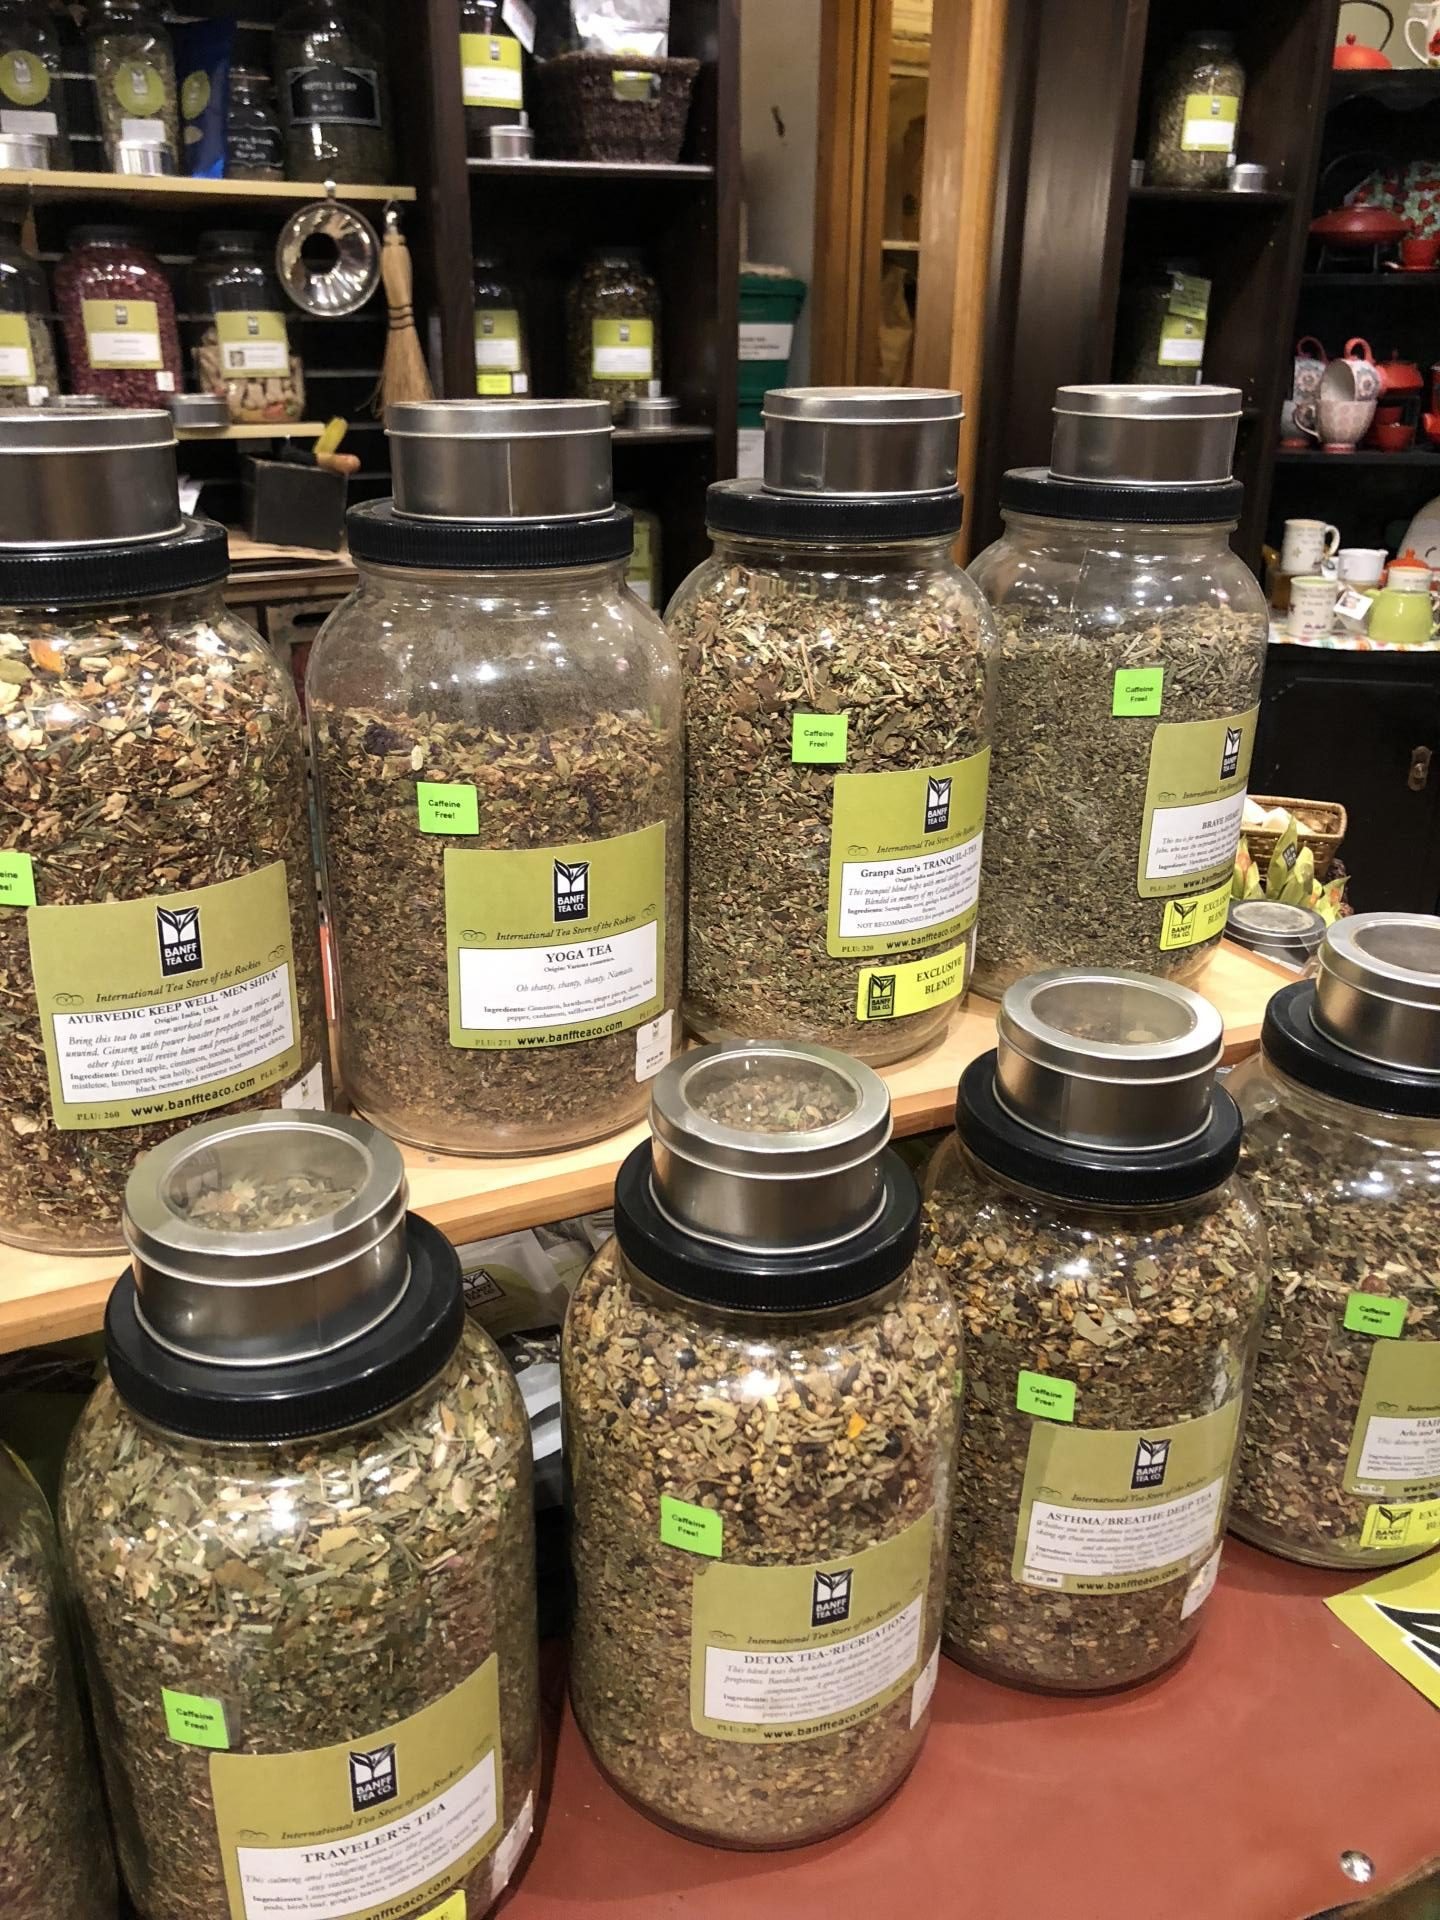 Tea collection at Banff Tea Co.